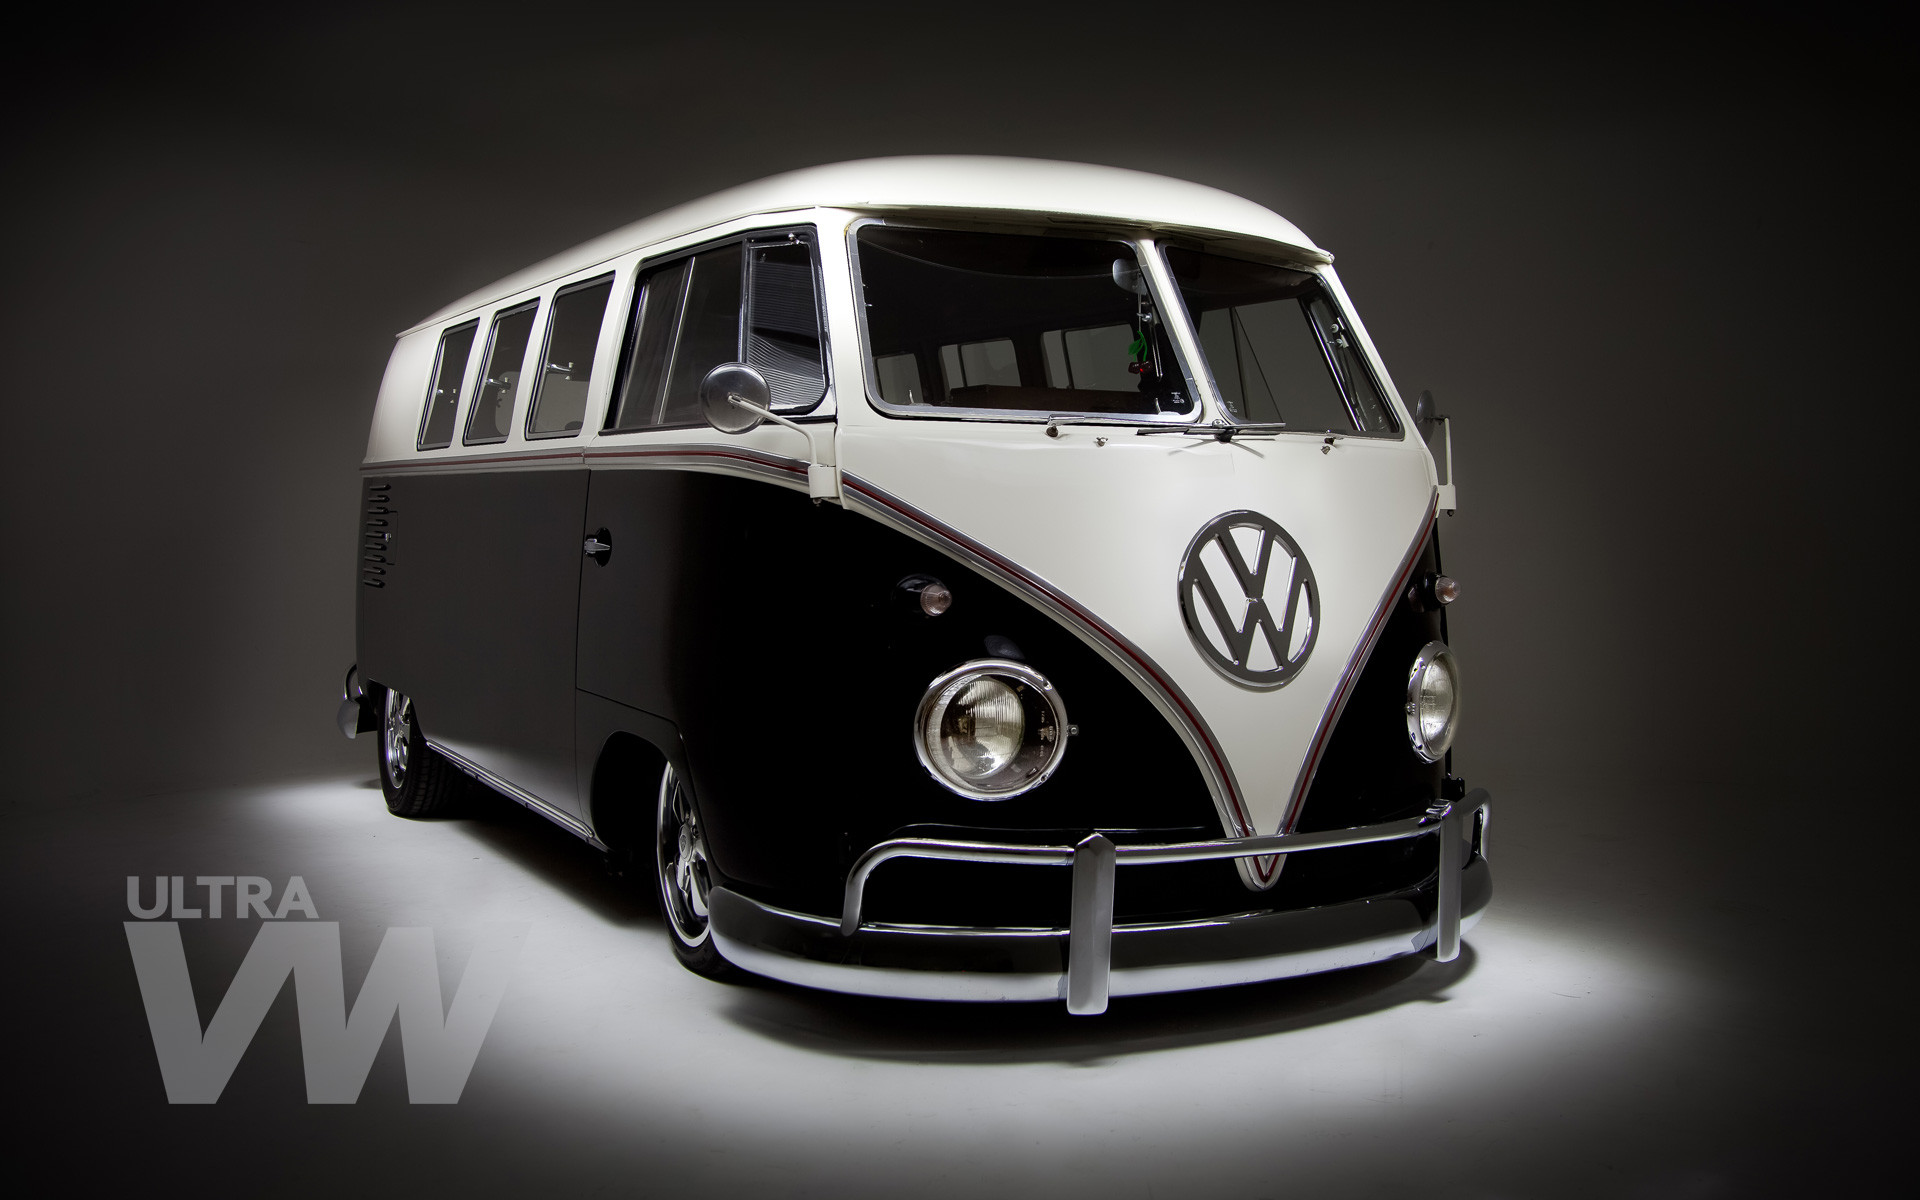 Res: 1920x1200, VW random VW related action blog Download awesome Ultra VW wallpaper